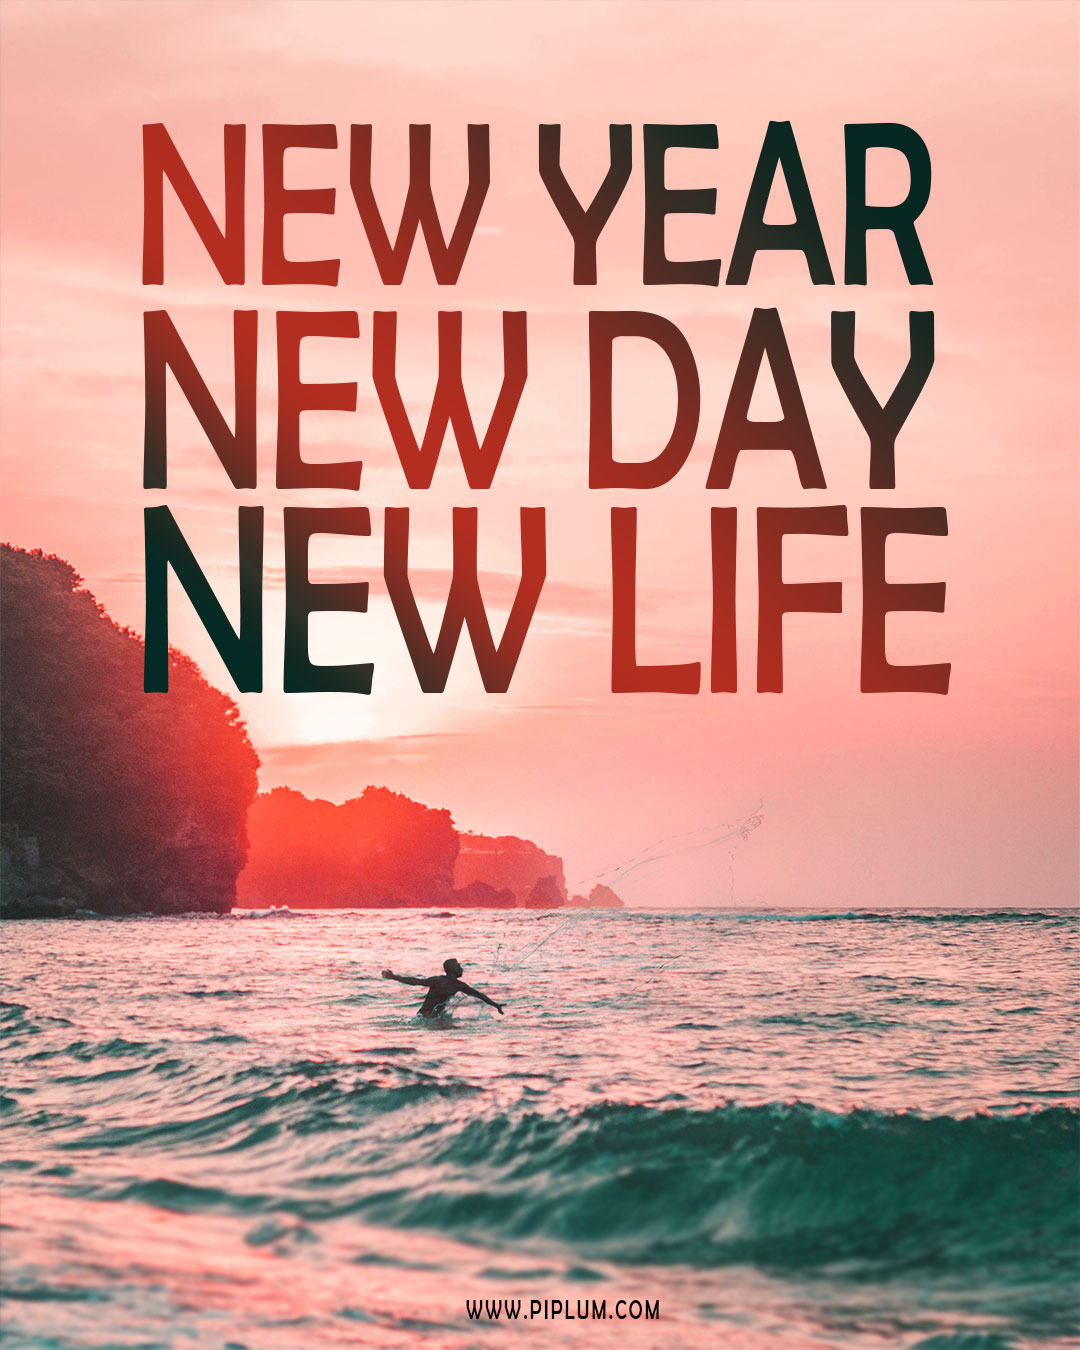 New Year New Day New Life Motivational Quote Picture Piplum